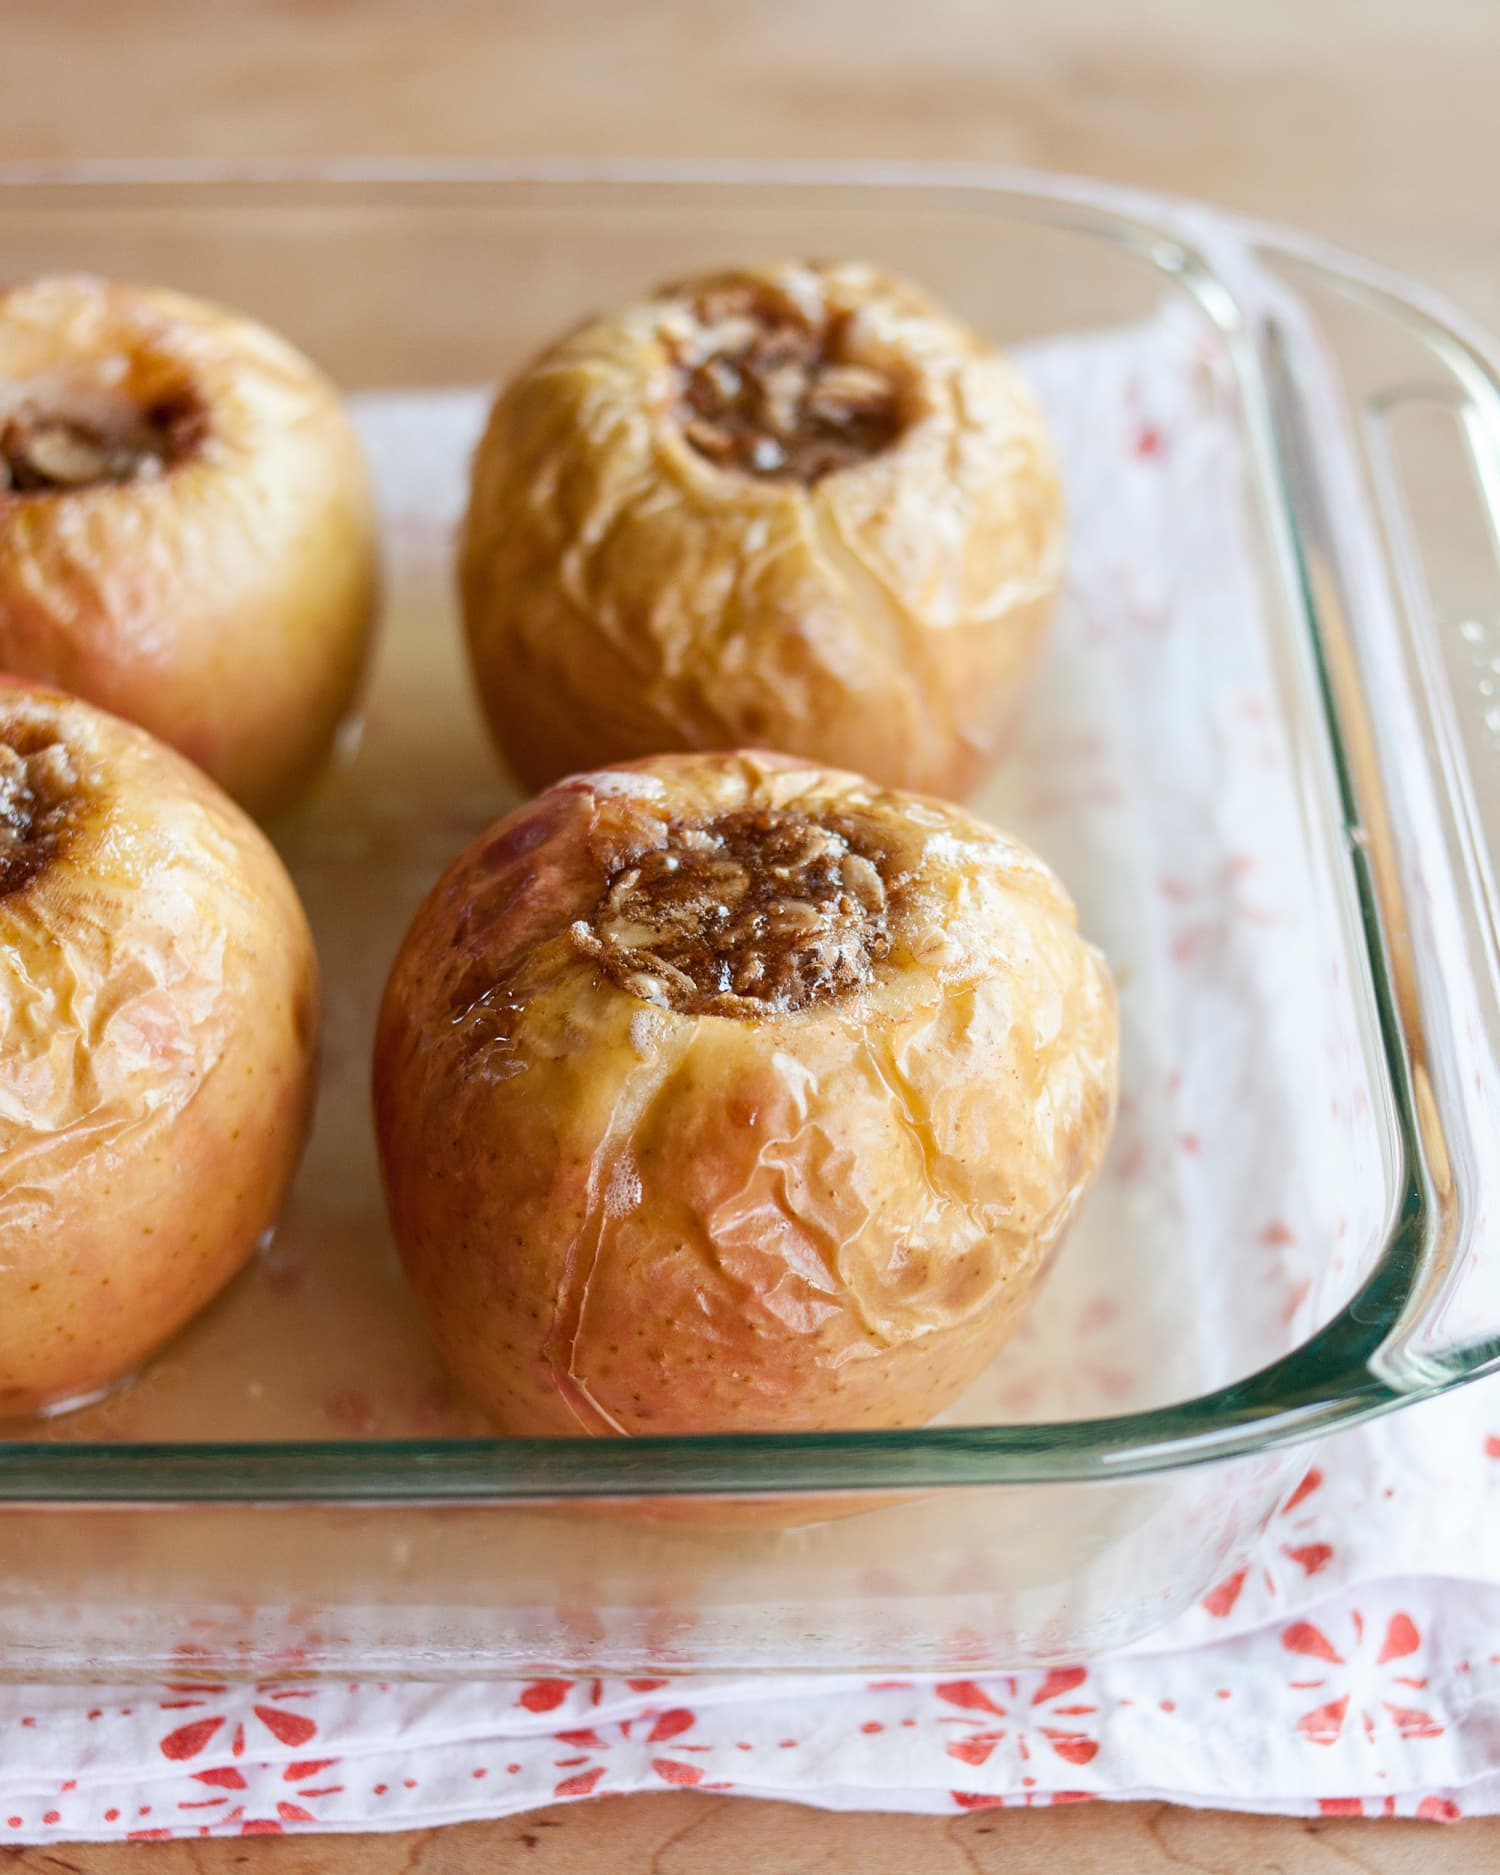 7 Tips for Making Baked Apples in the Microwave